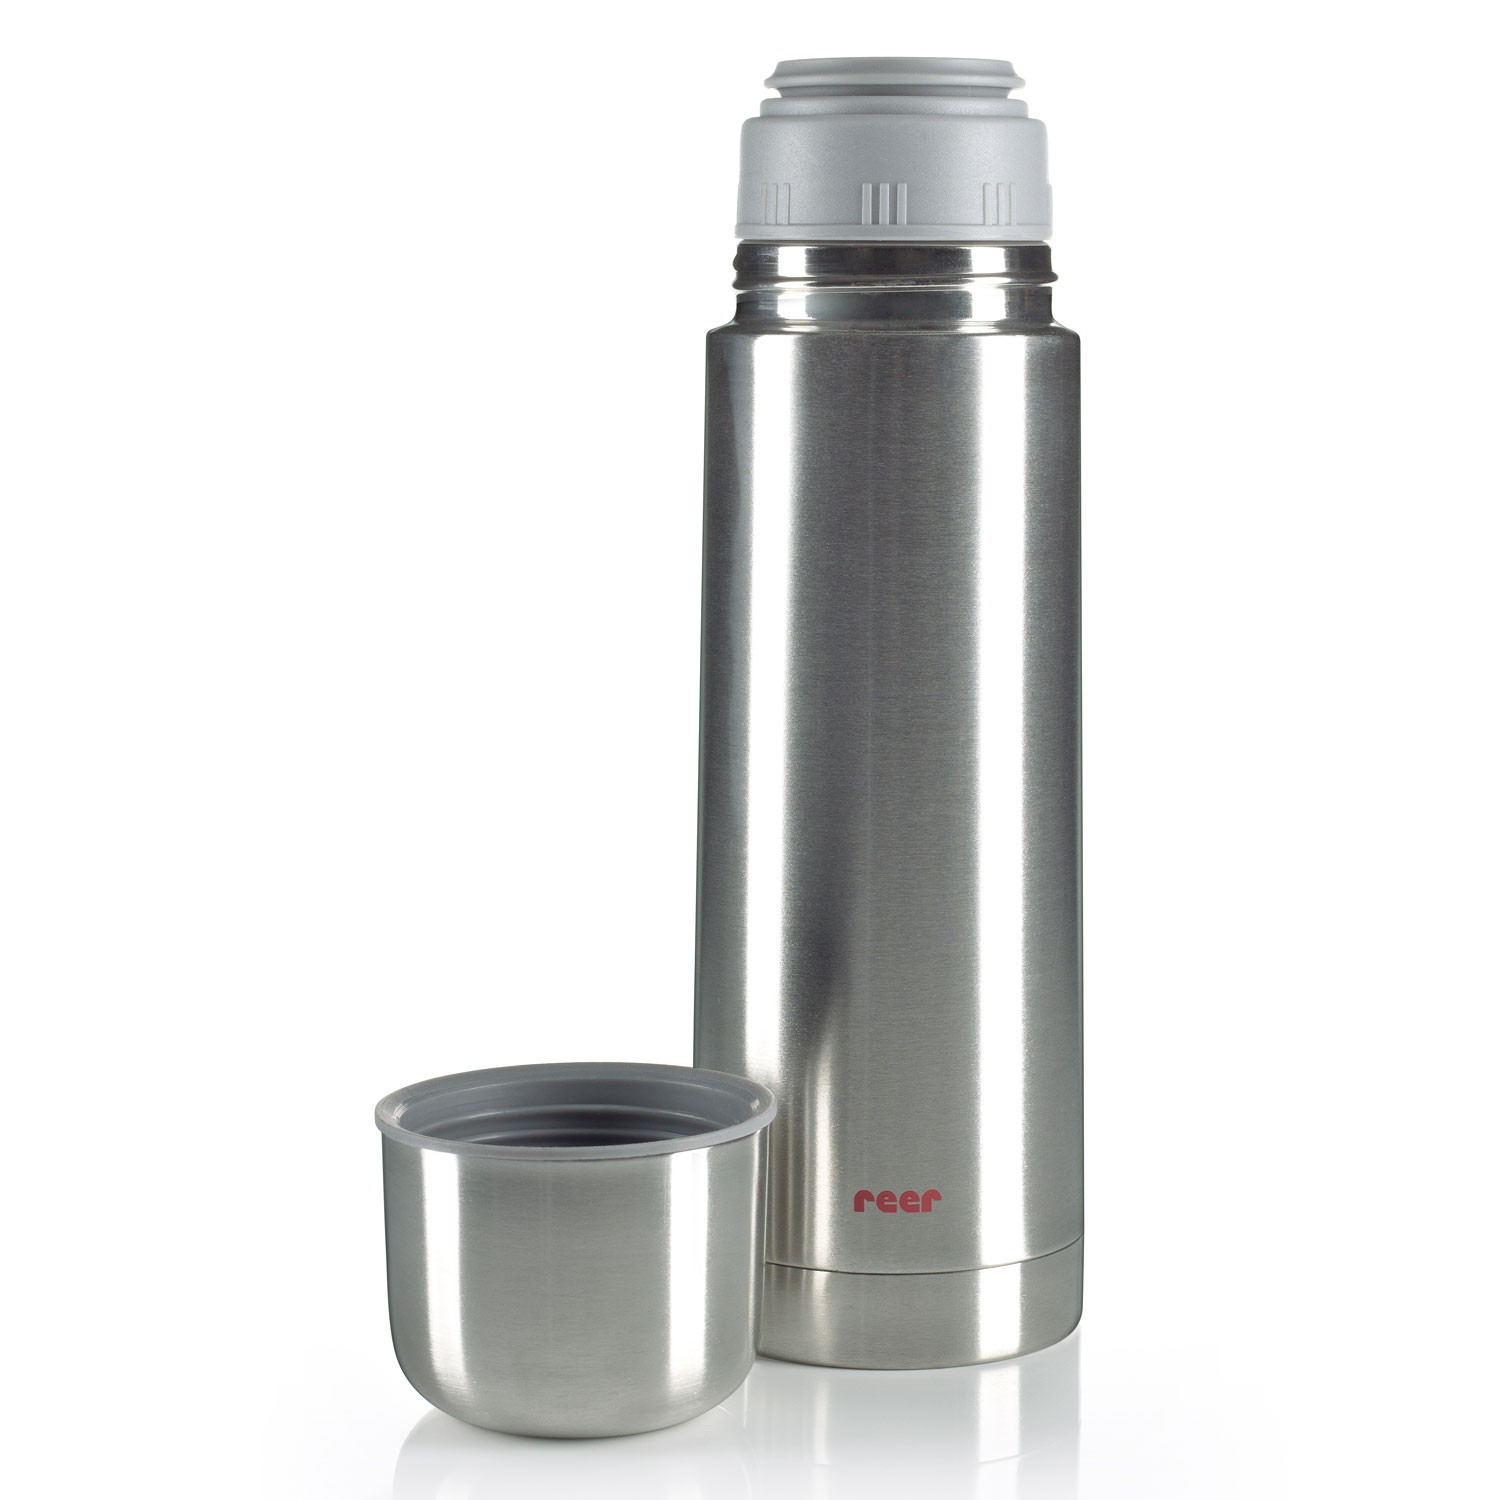 Reer Reer Stainless steel thermal flask, 500 ml